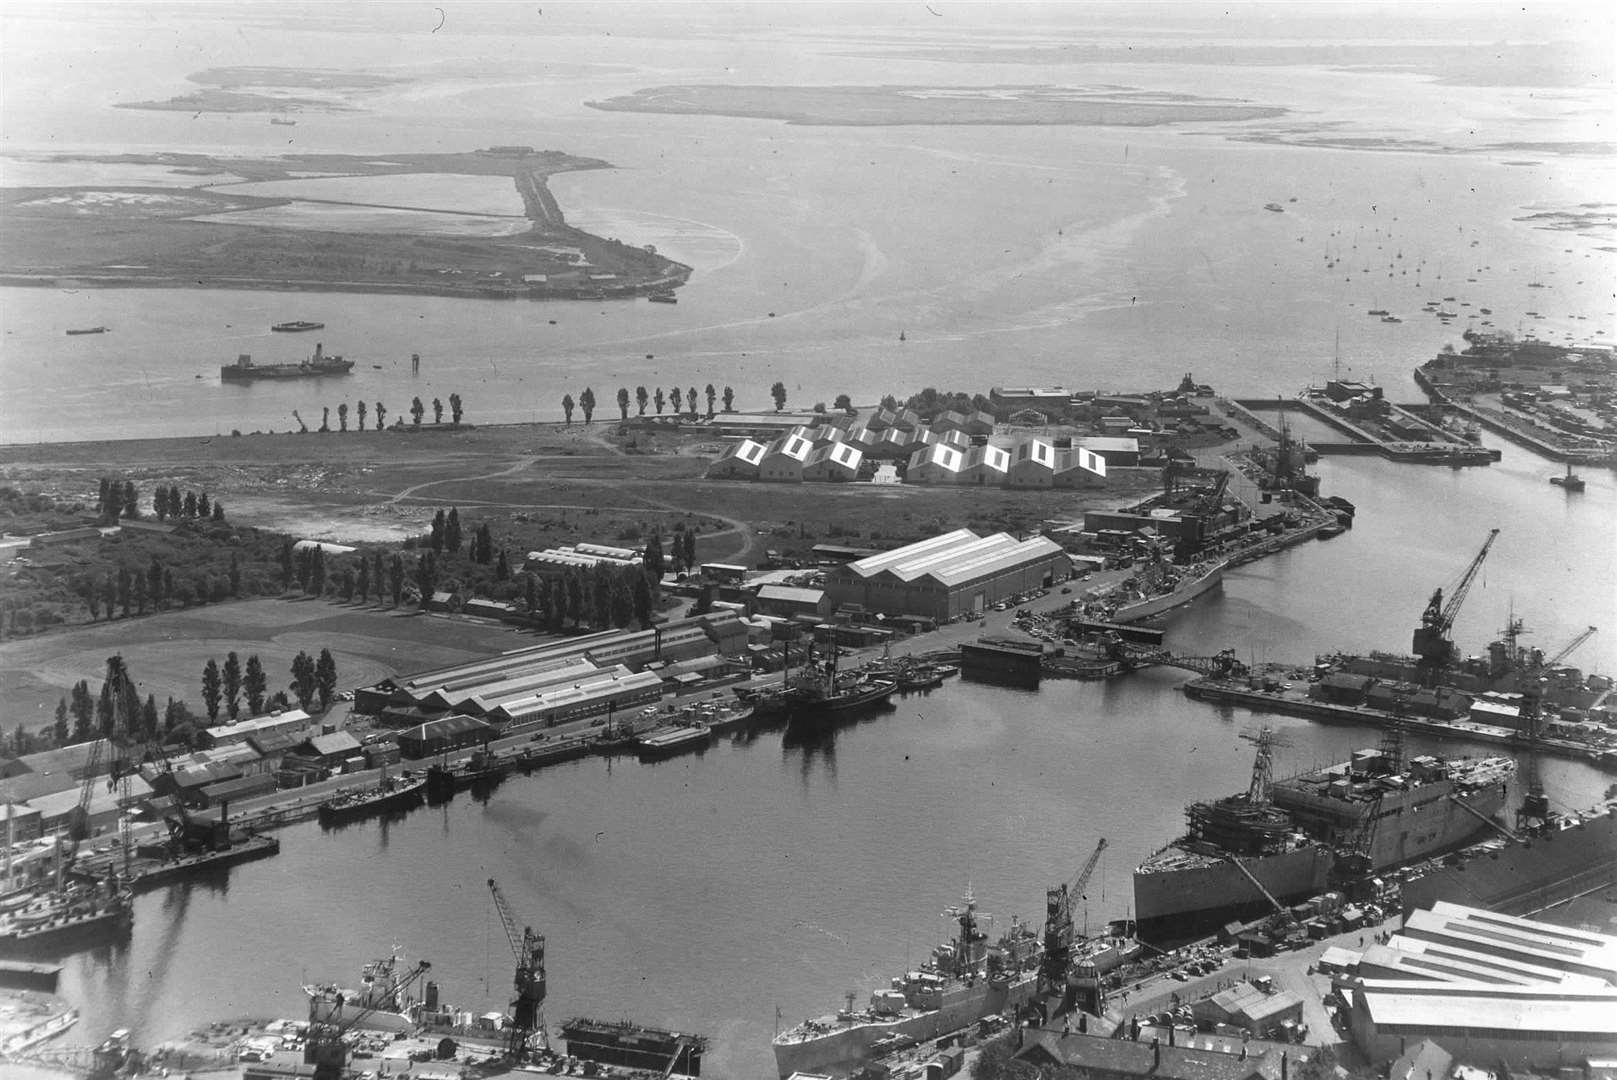 Aerial View of Chatham Dockyard in the early 60s